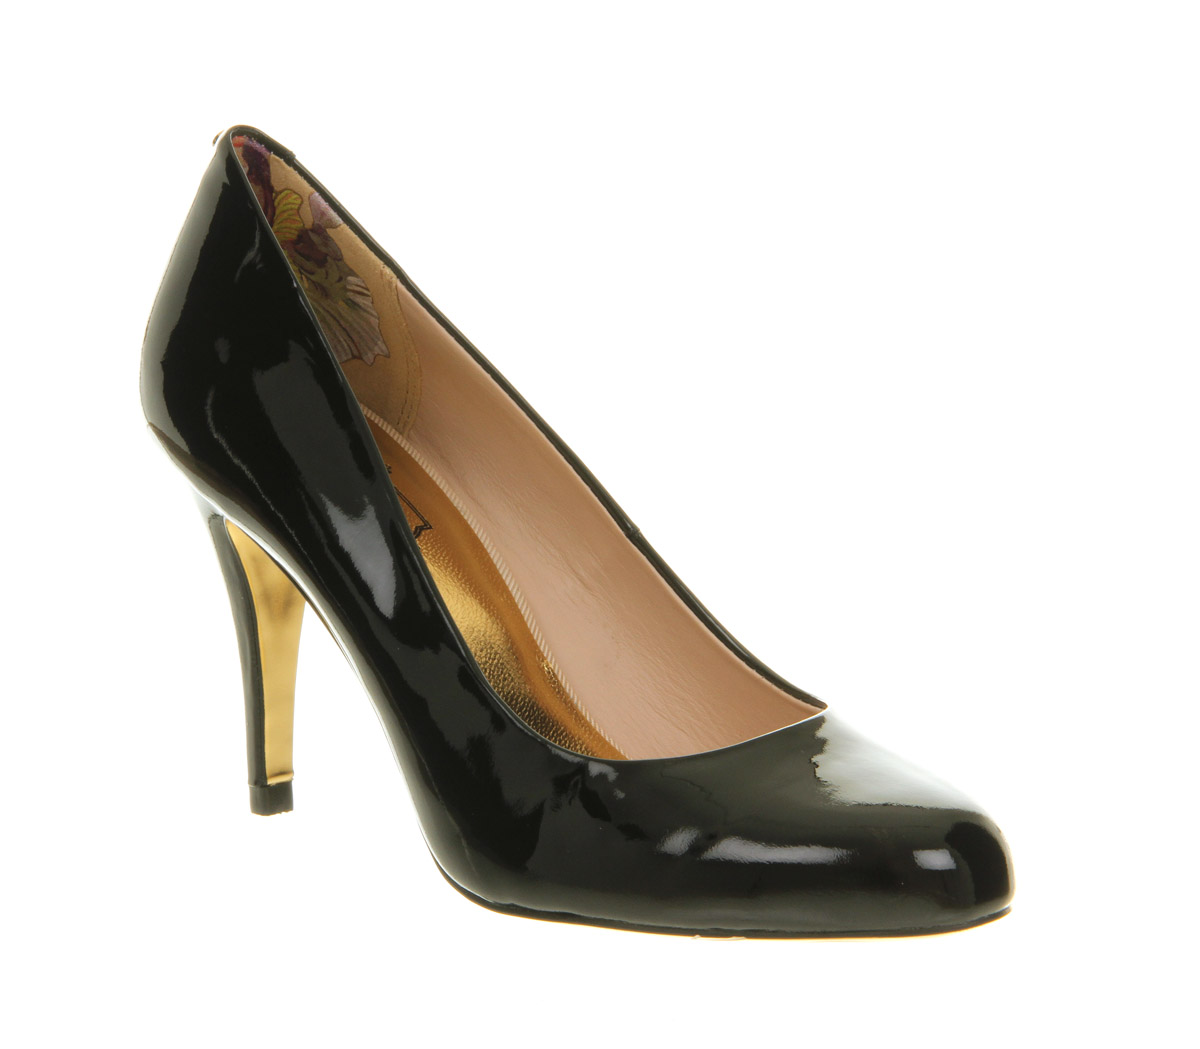 Details about Womens Ted Baker Marae High Heel Court Shoe Black Patent